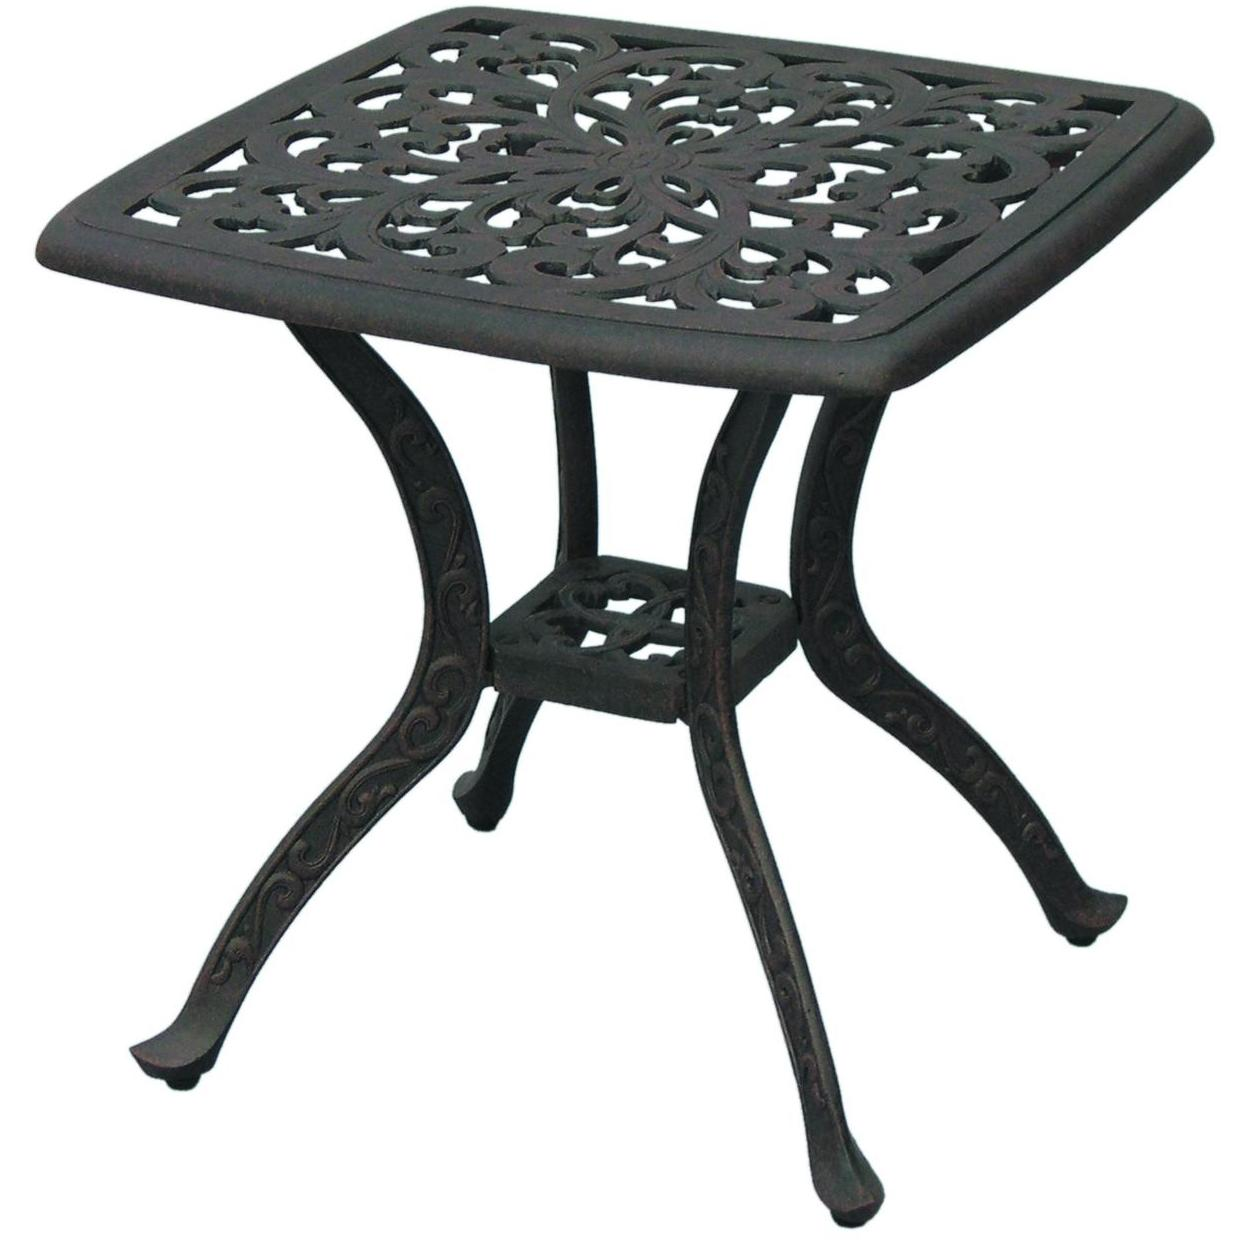 darlee series cast aluminum patio end table square bbq guys outdoor side black wire coffee cream lamp shades iron frame queen pier one ott small bedside light ashley furniture